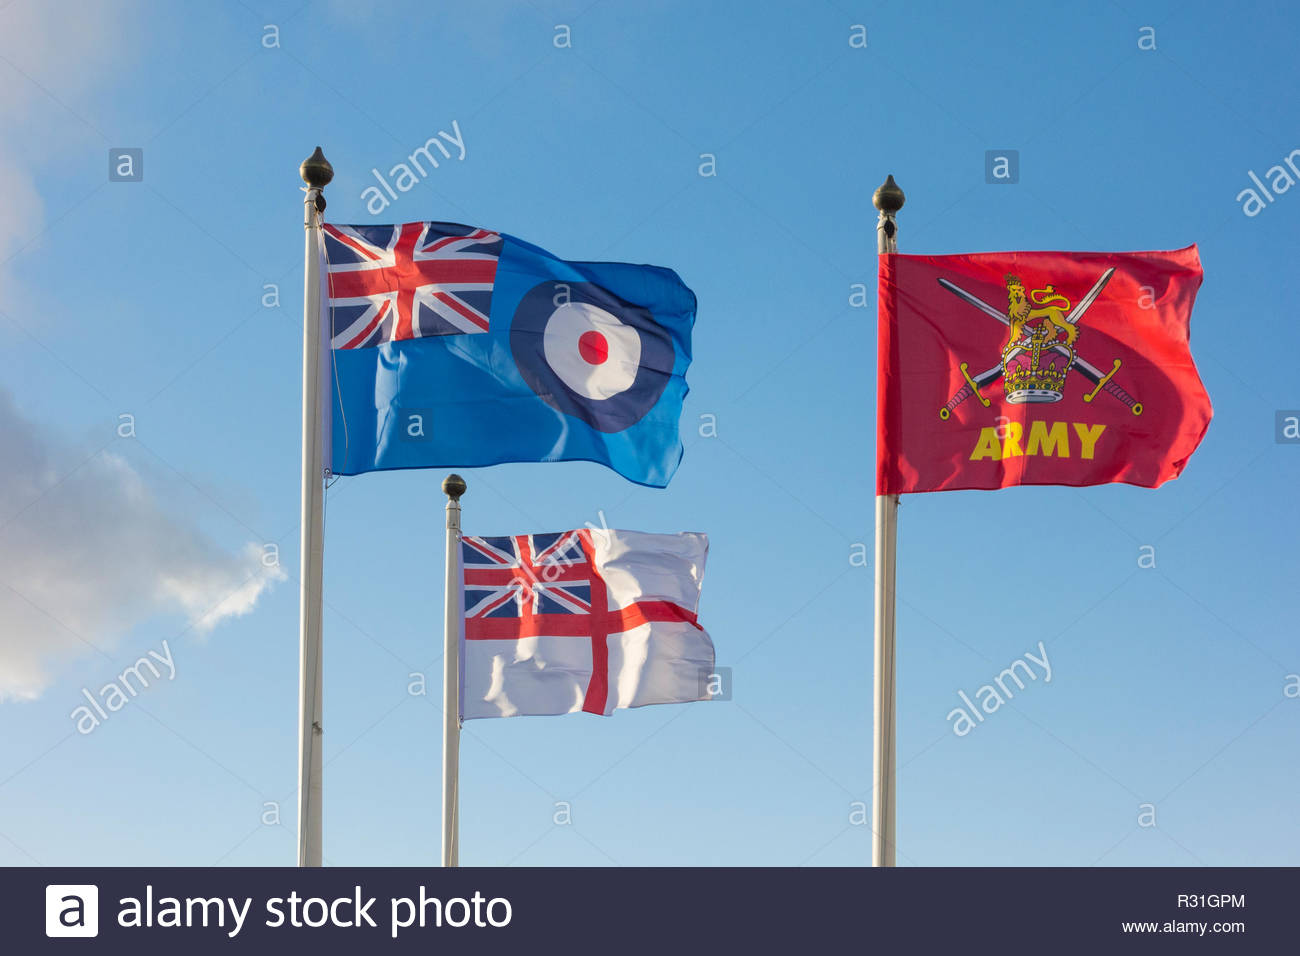 Flags for the Army, Royal Navy and Royal Air Force flying by the war memorial on Marine Road, Morecambe, Lancashire on 11 Nov 2018 - Stock Image